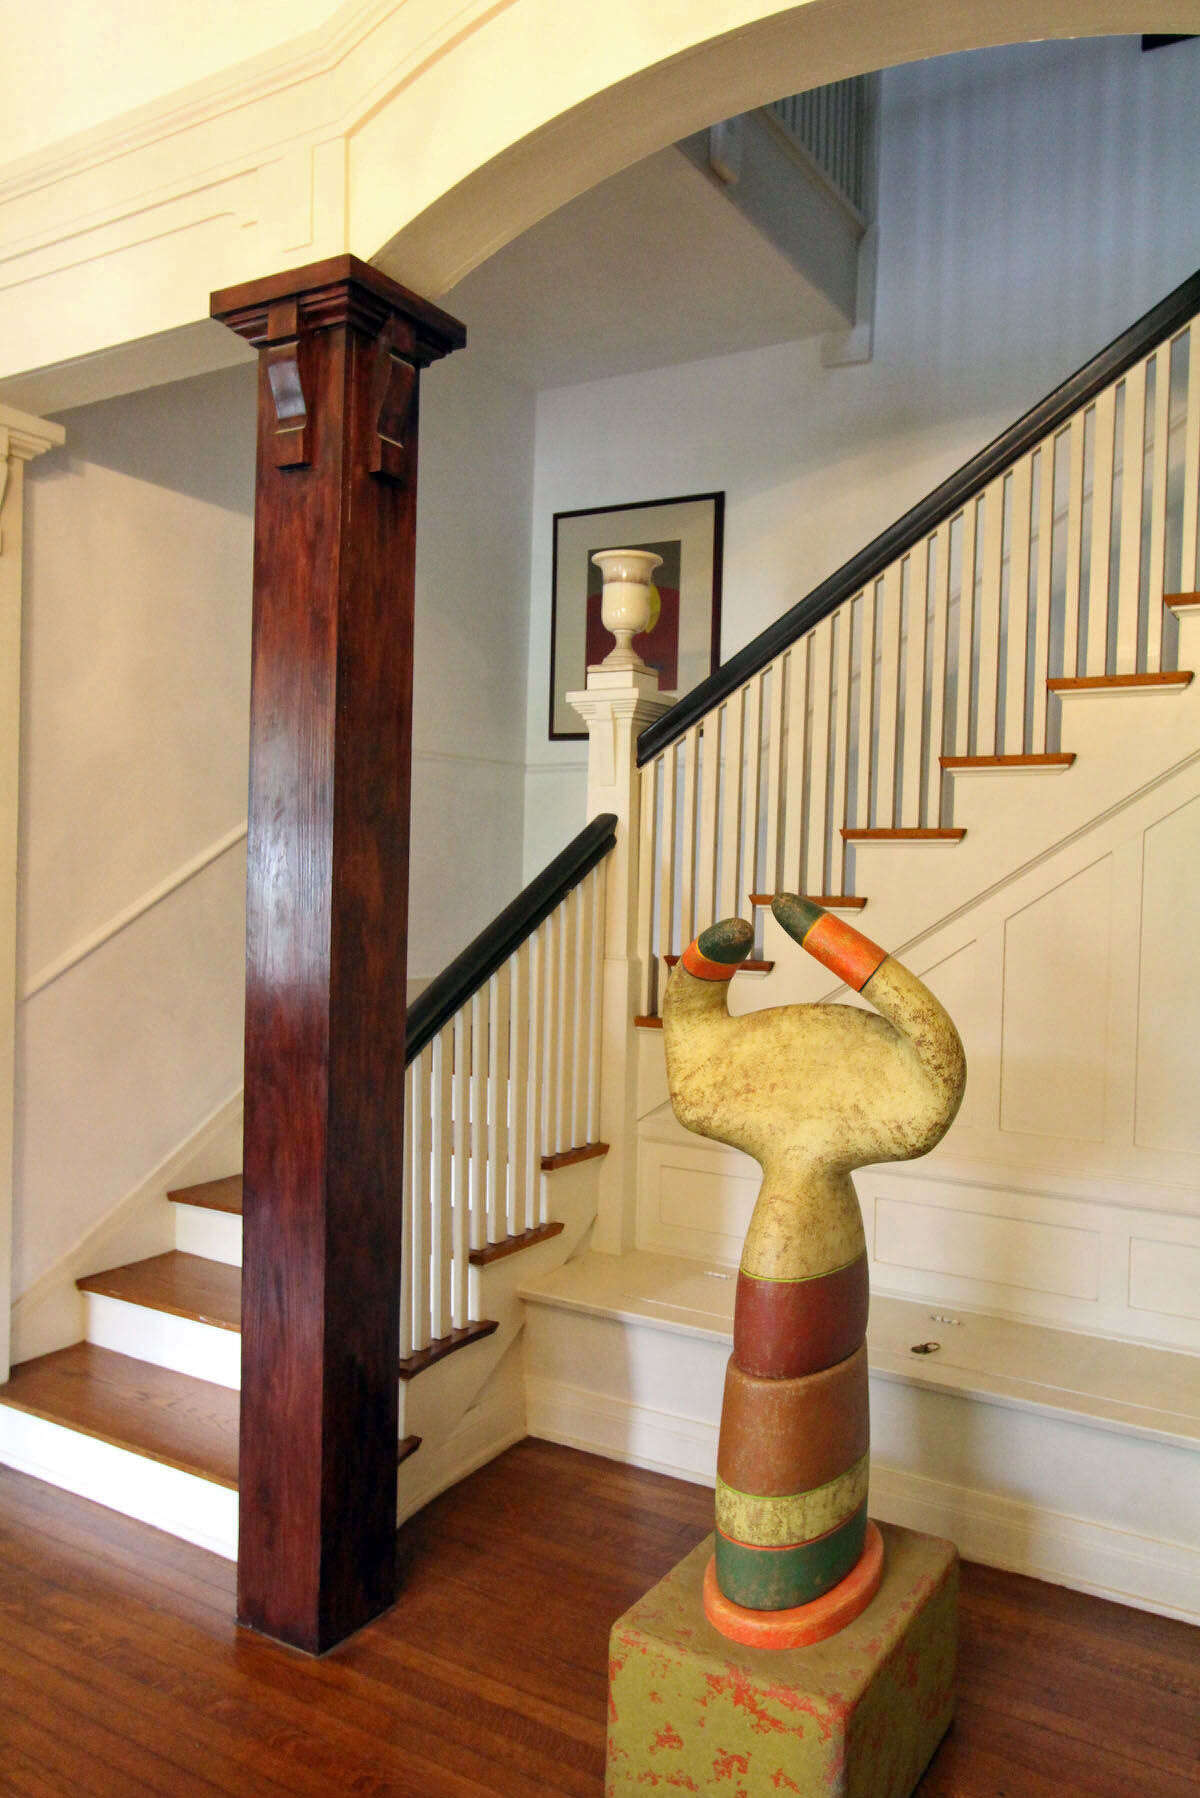 A statue by Beacon Hill artist Danville Chadbourne is the focal point of the entry.